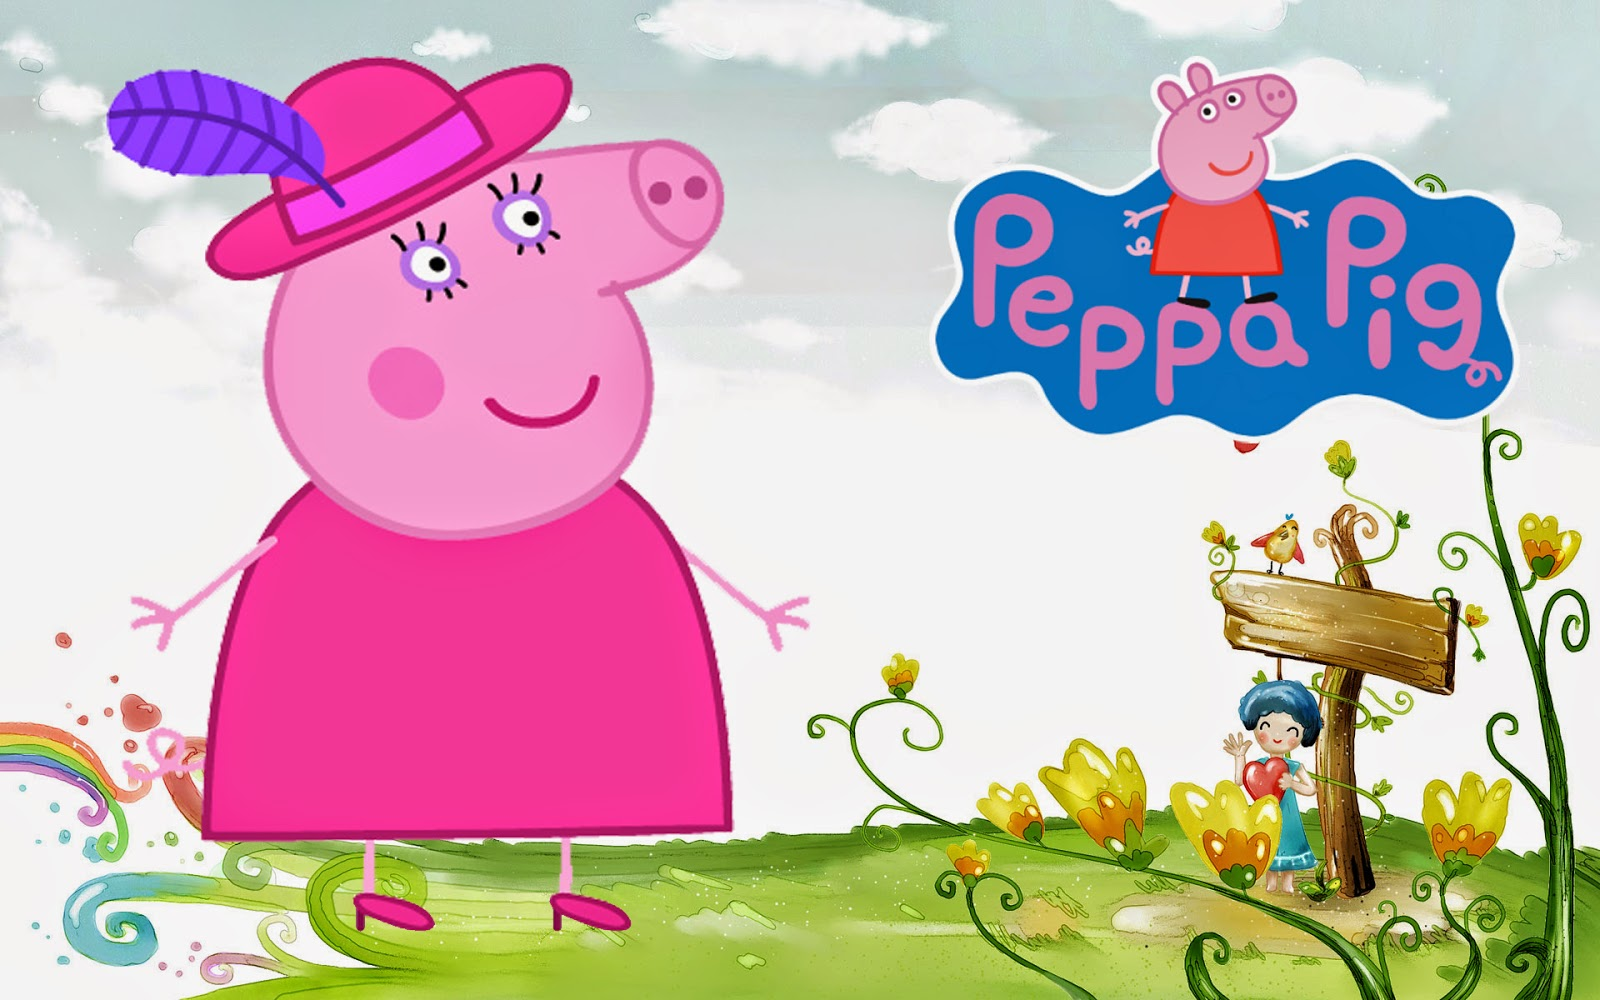 Mummy Peppa Pig On The Farm HQ Wallpaper Download Free